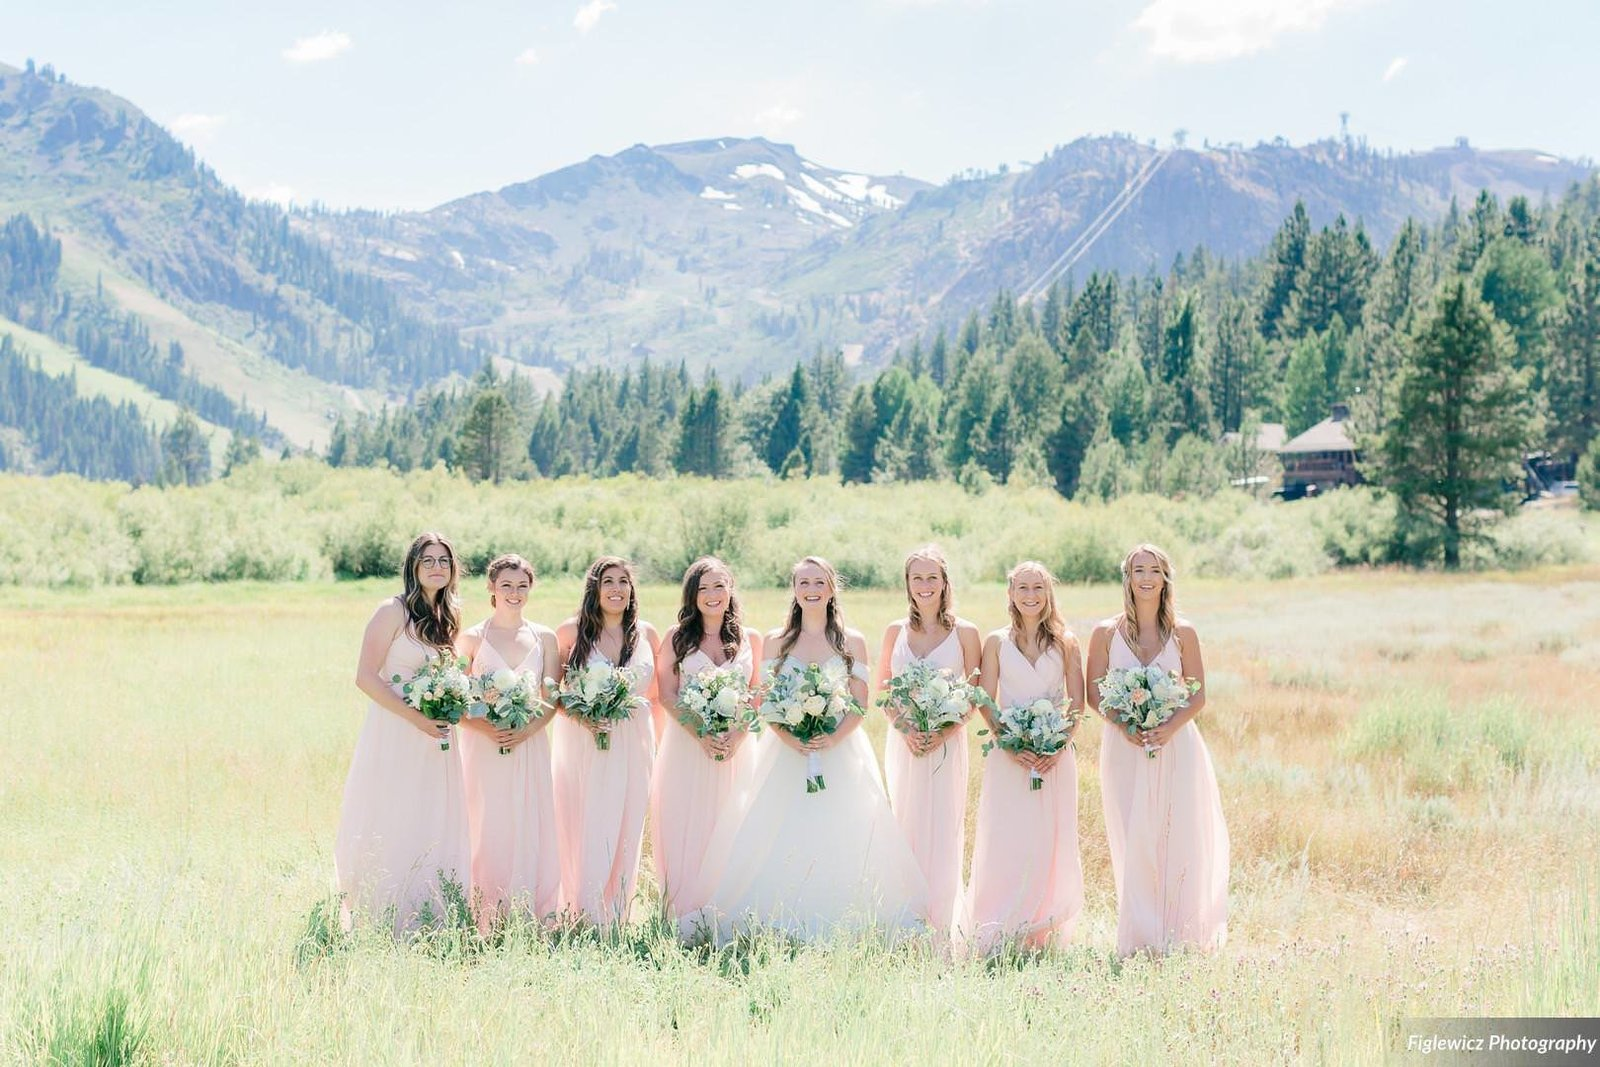 Garden_Tinsley_FiglewiczPhotography_LakeTahoeWeddingSquawValleyCreekTaylorBrendan00042_big